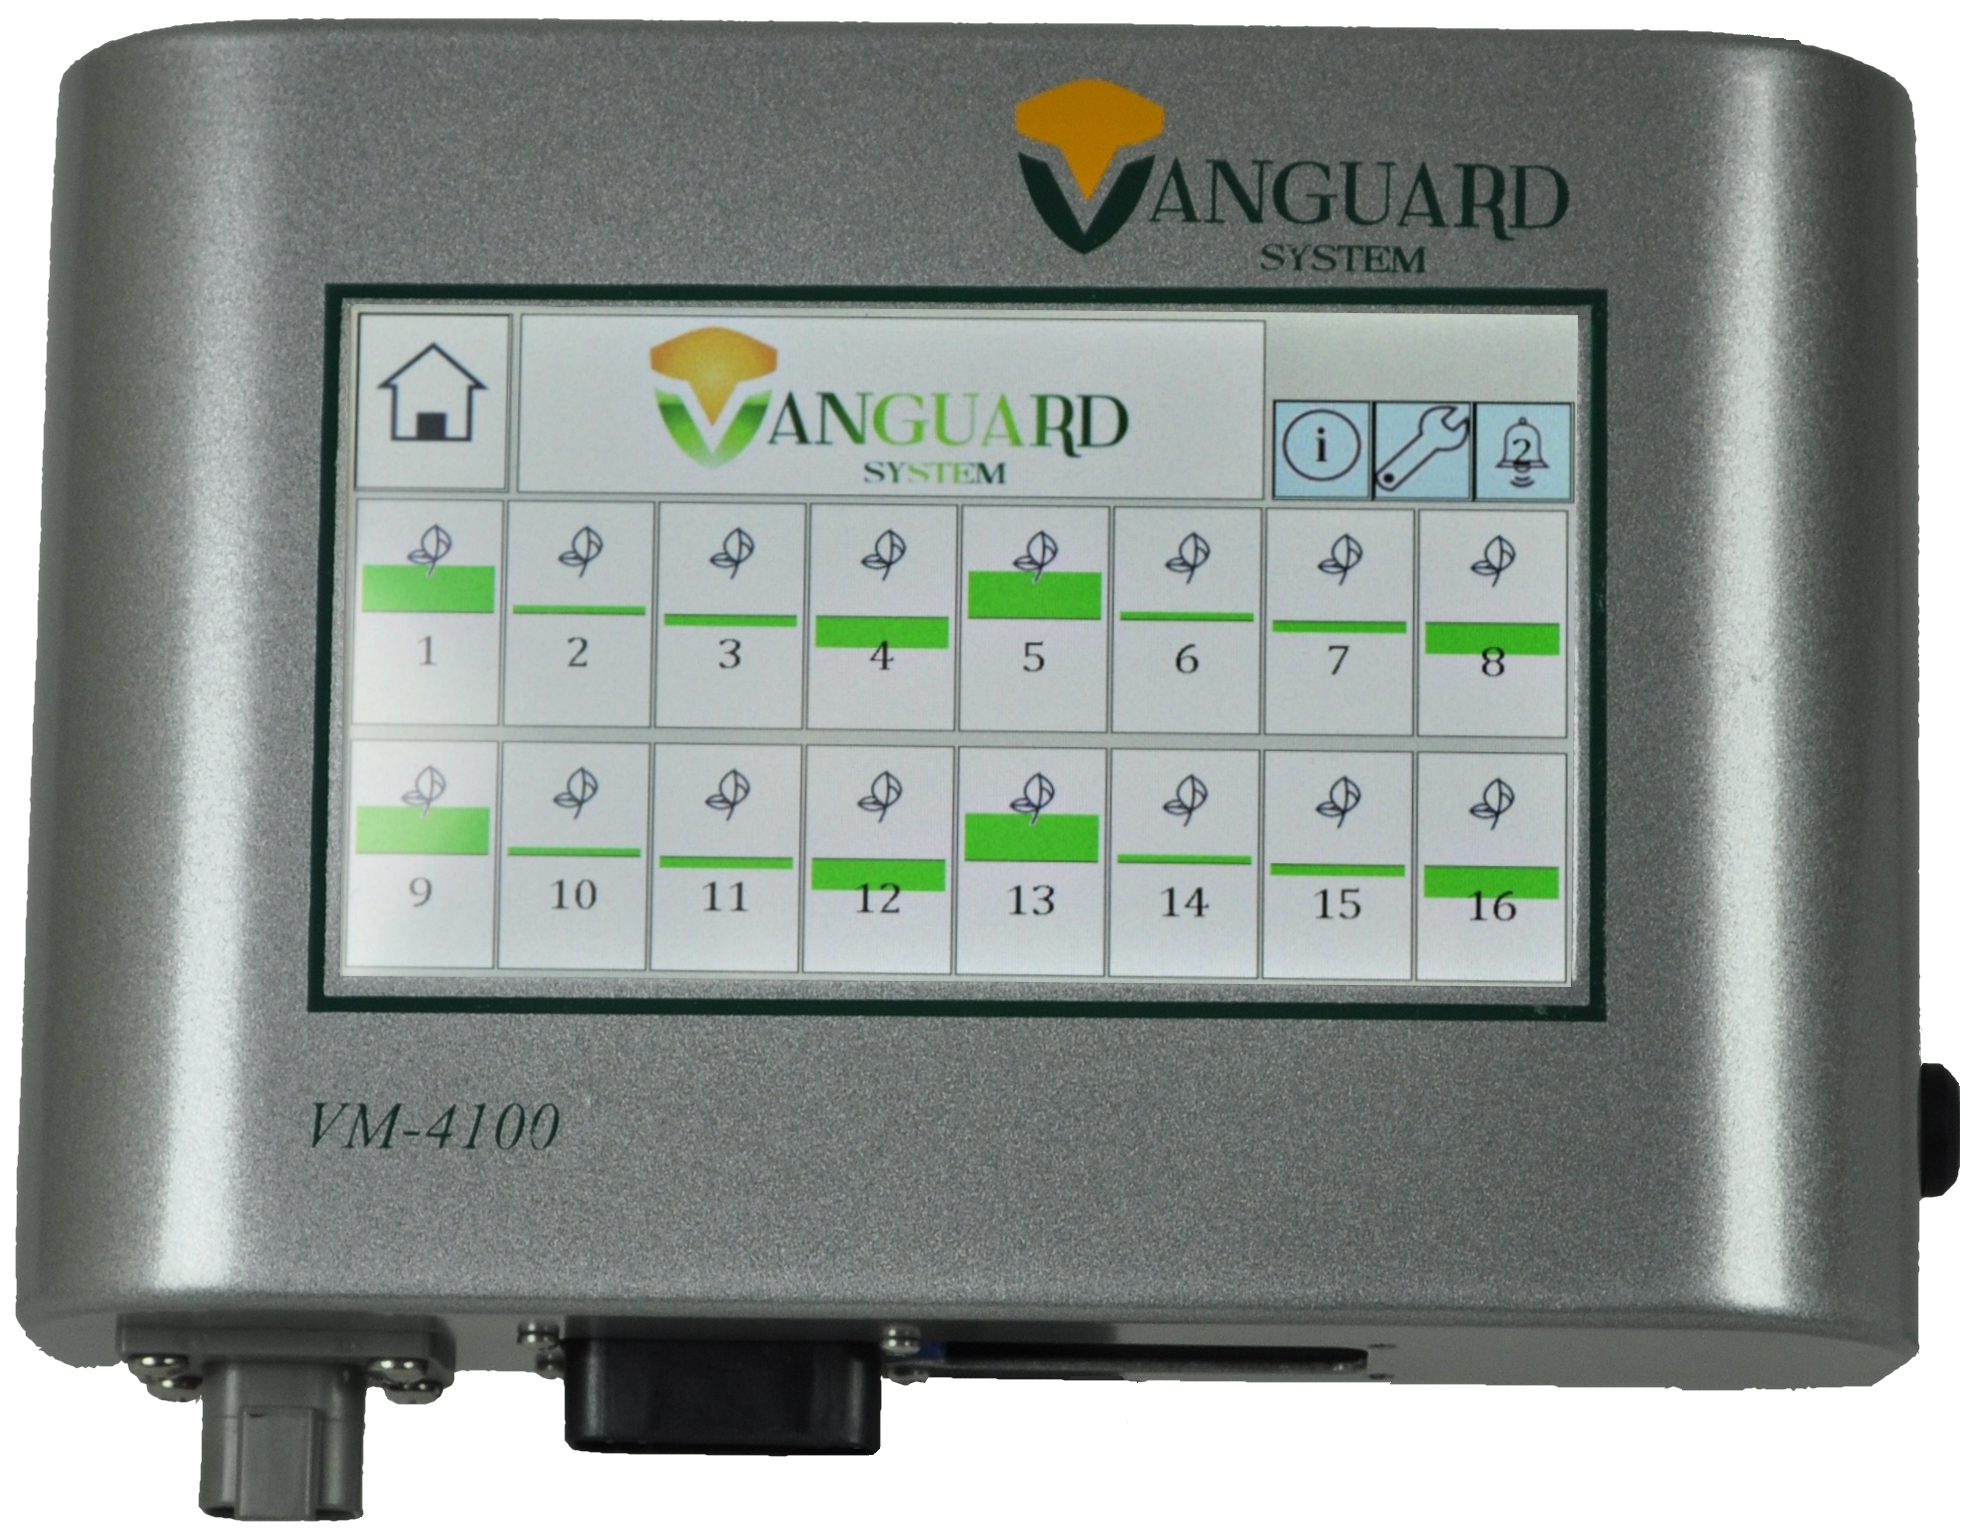 Vanguard Wiring Harness Detailed Diagrams Shorelander Elite Ag Solutions Precision Dealer In Northeast Indiana Obd0 To Obd1 Conversion